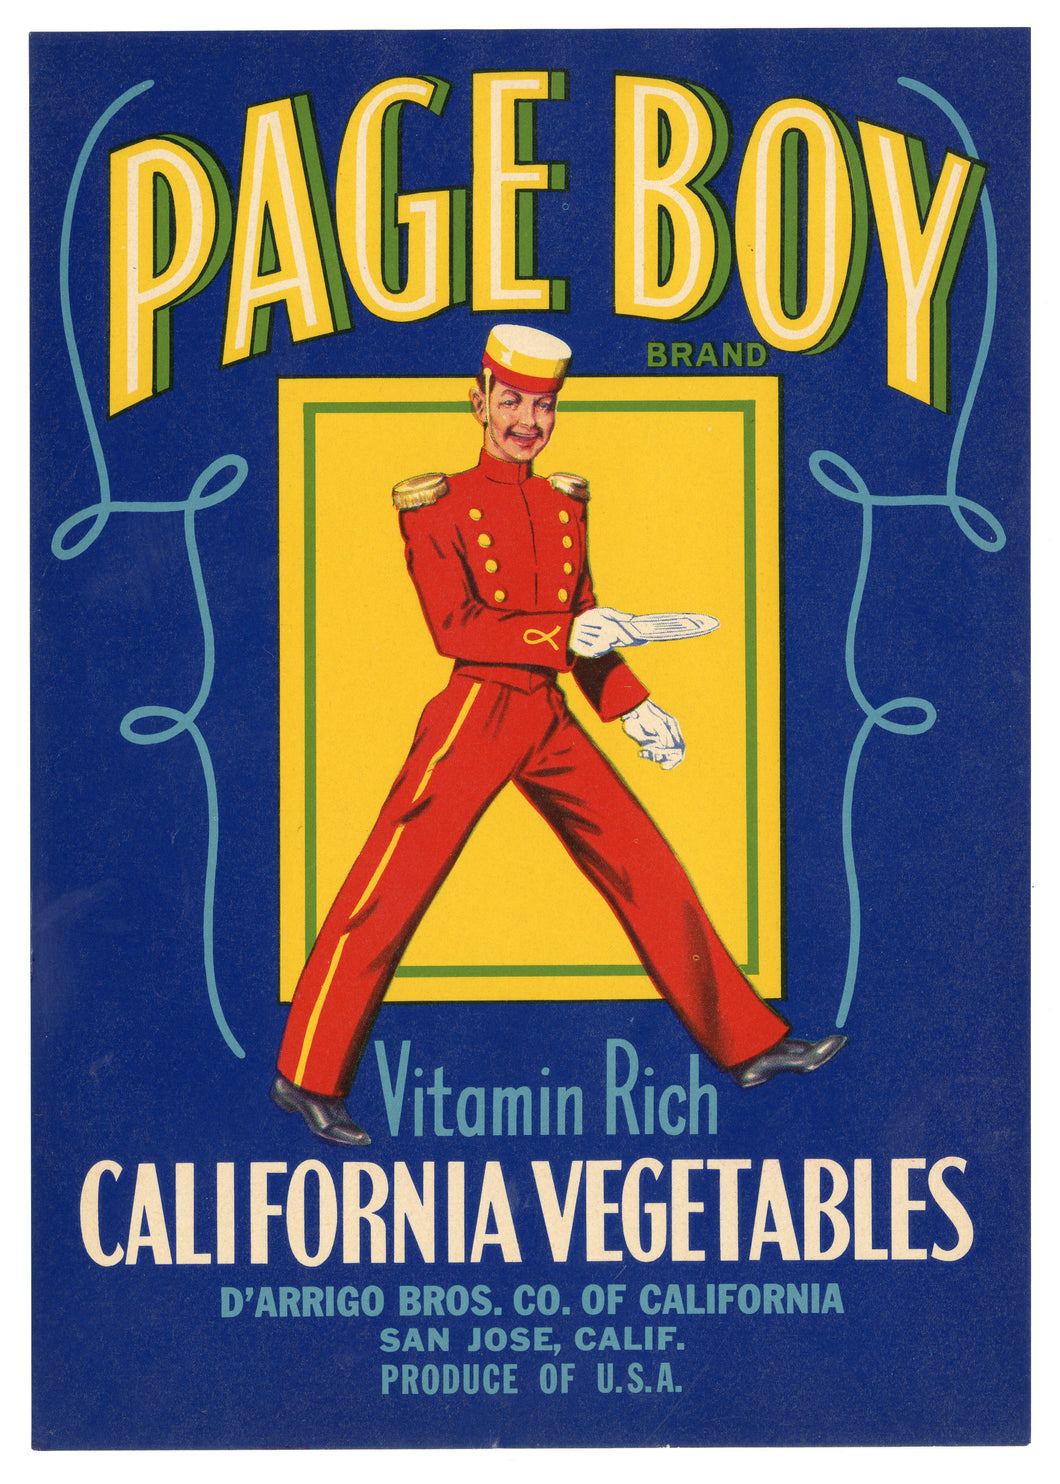 Vintage, Unused PAGE BOY Vegetable Crate Label || San Jose, CA.